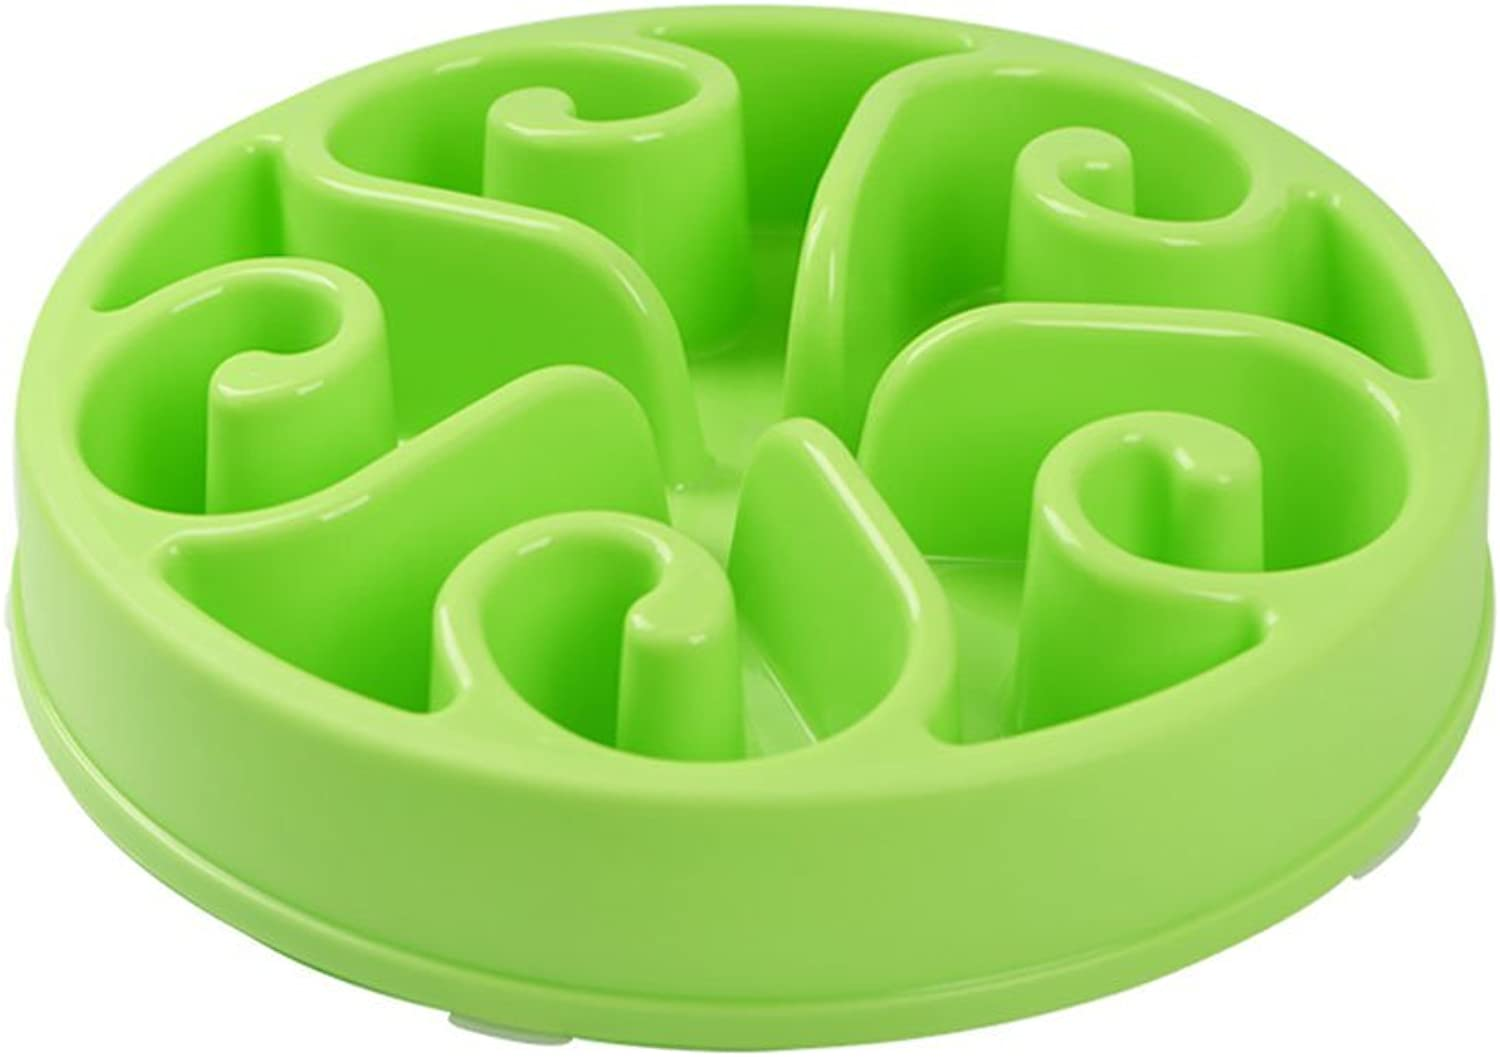 Pet Bowl Cat Dog Slow Food Flood Prevention Food Bowl Single Bowl Water Bowl Medium and Large Dogs Pet Supplies (color   Green)